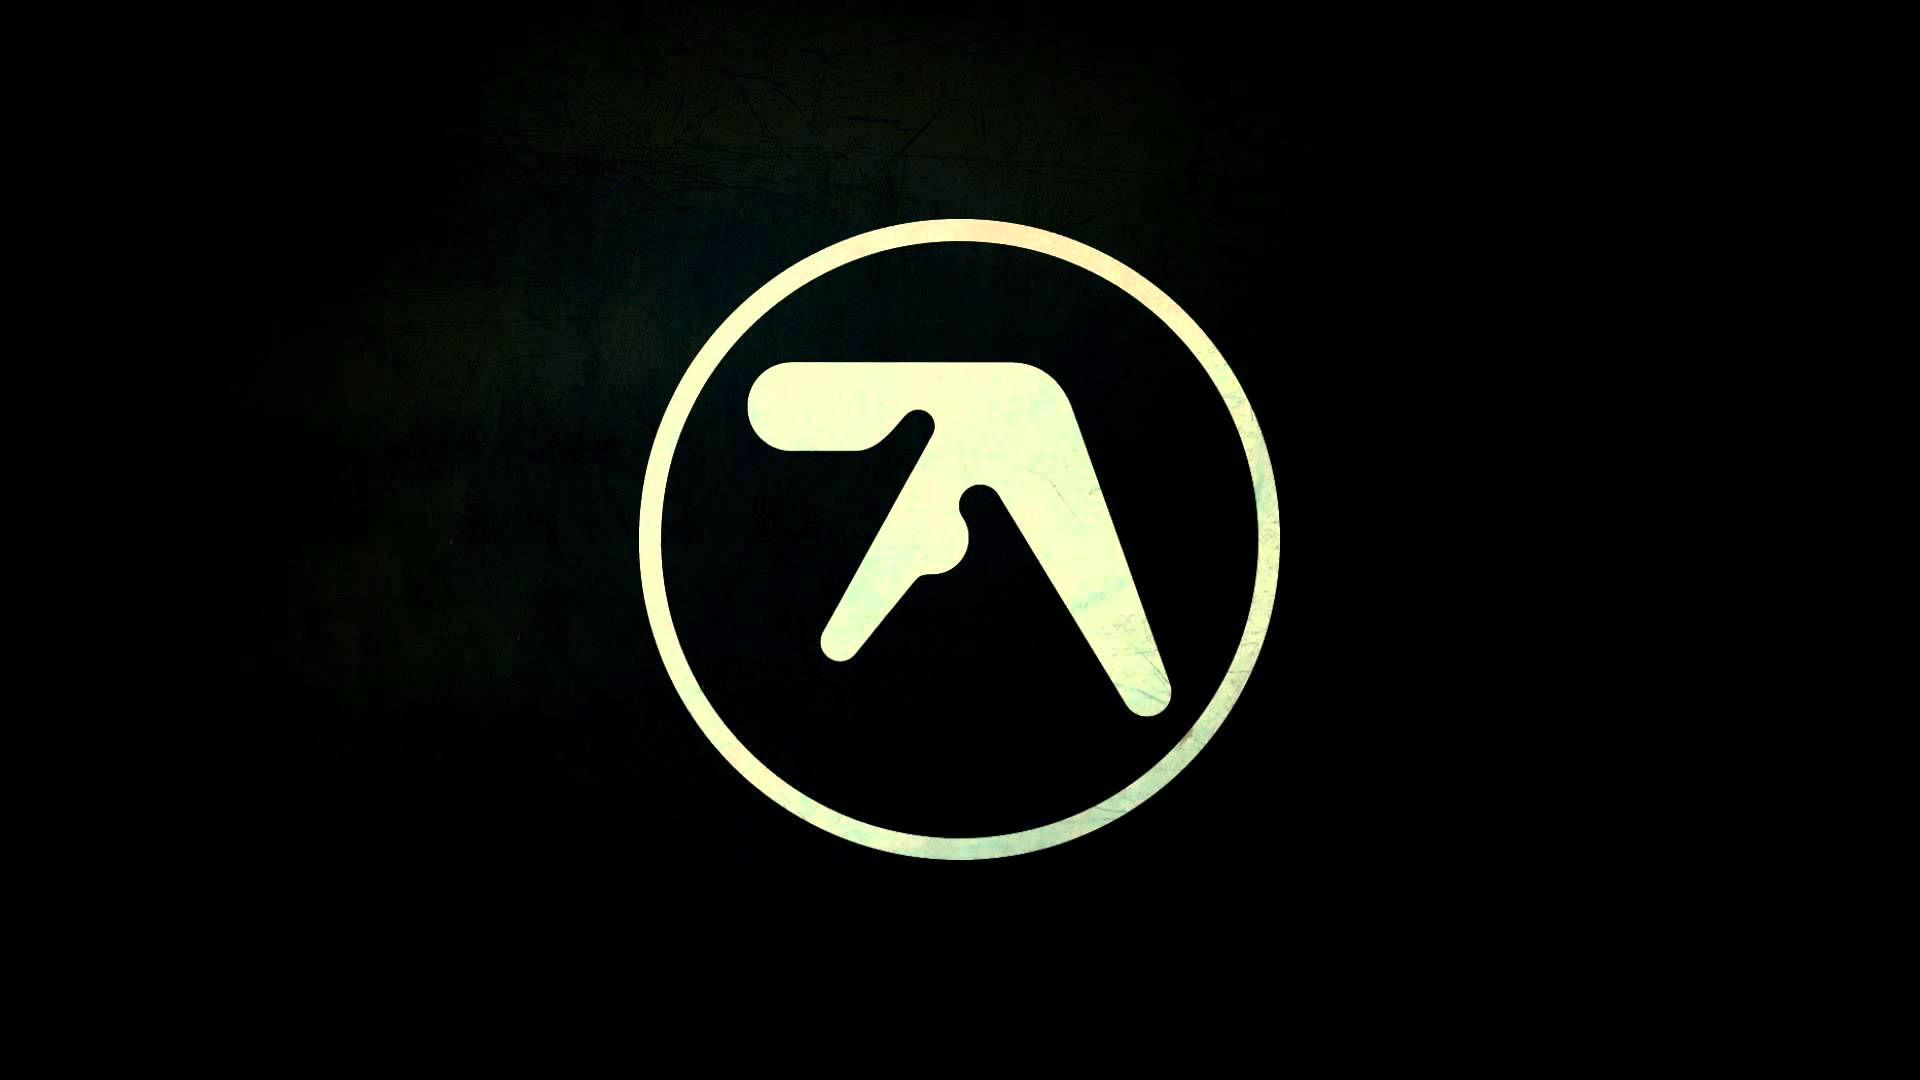 Aphex Twin Backgrounds on Wallpapers Vista